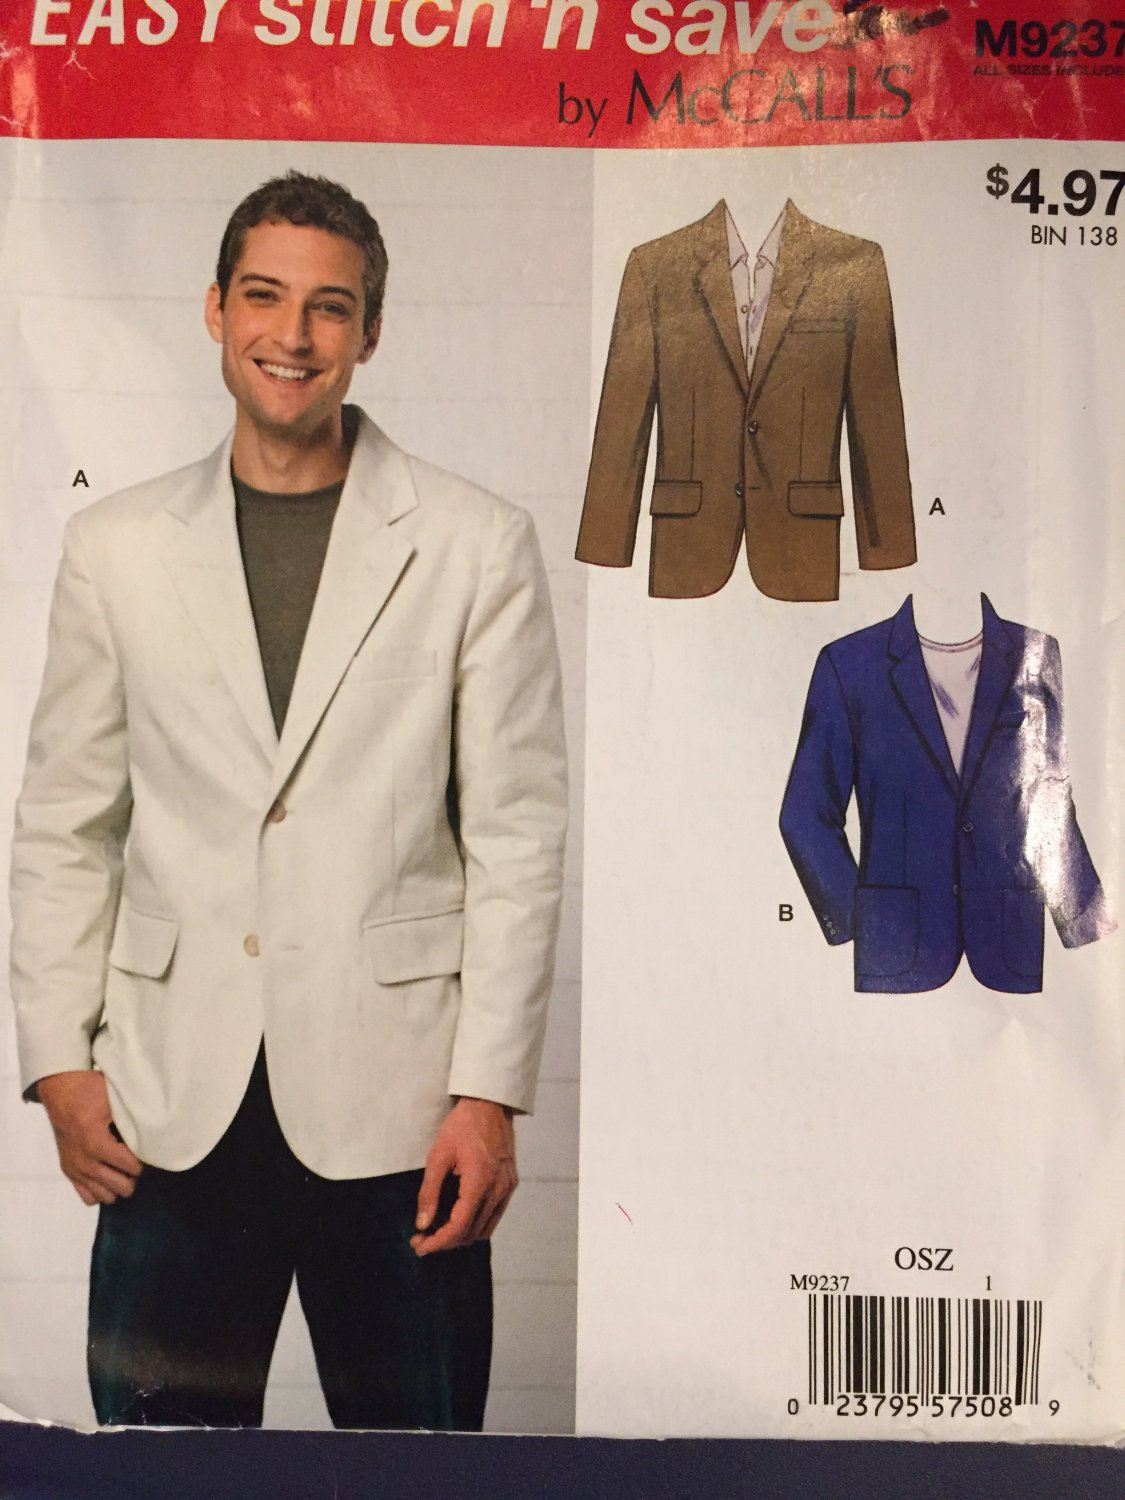 McCalls 7796 or Kwik Sew 3485 Mens Blazer Pattern Jacket Sewing Pattern Size SM - XXL Chest 34 - 52